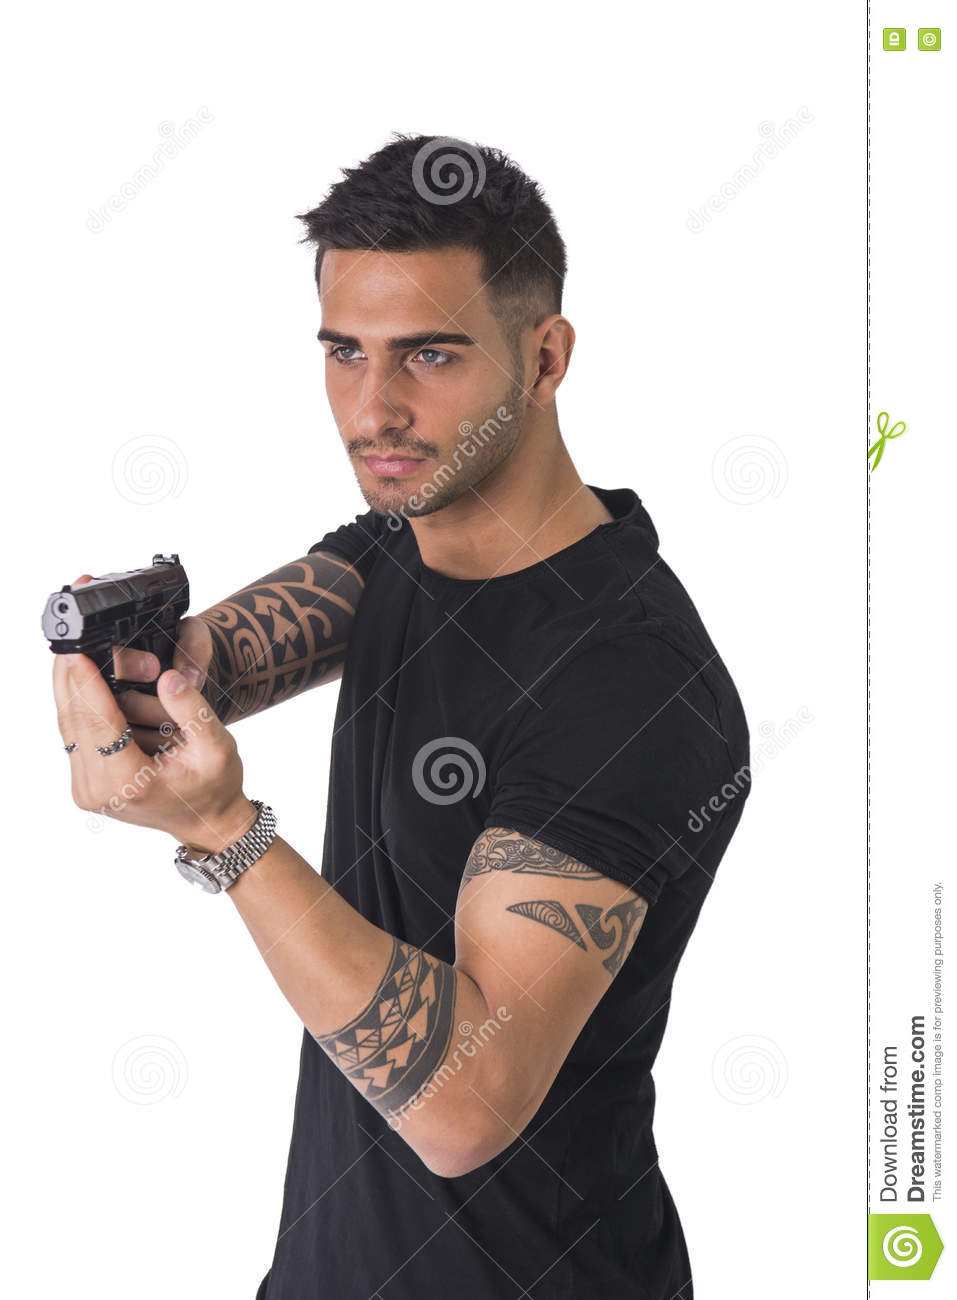 Young man pointing gun, stock photo. Image of adult, male ...